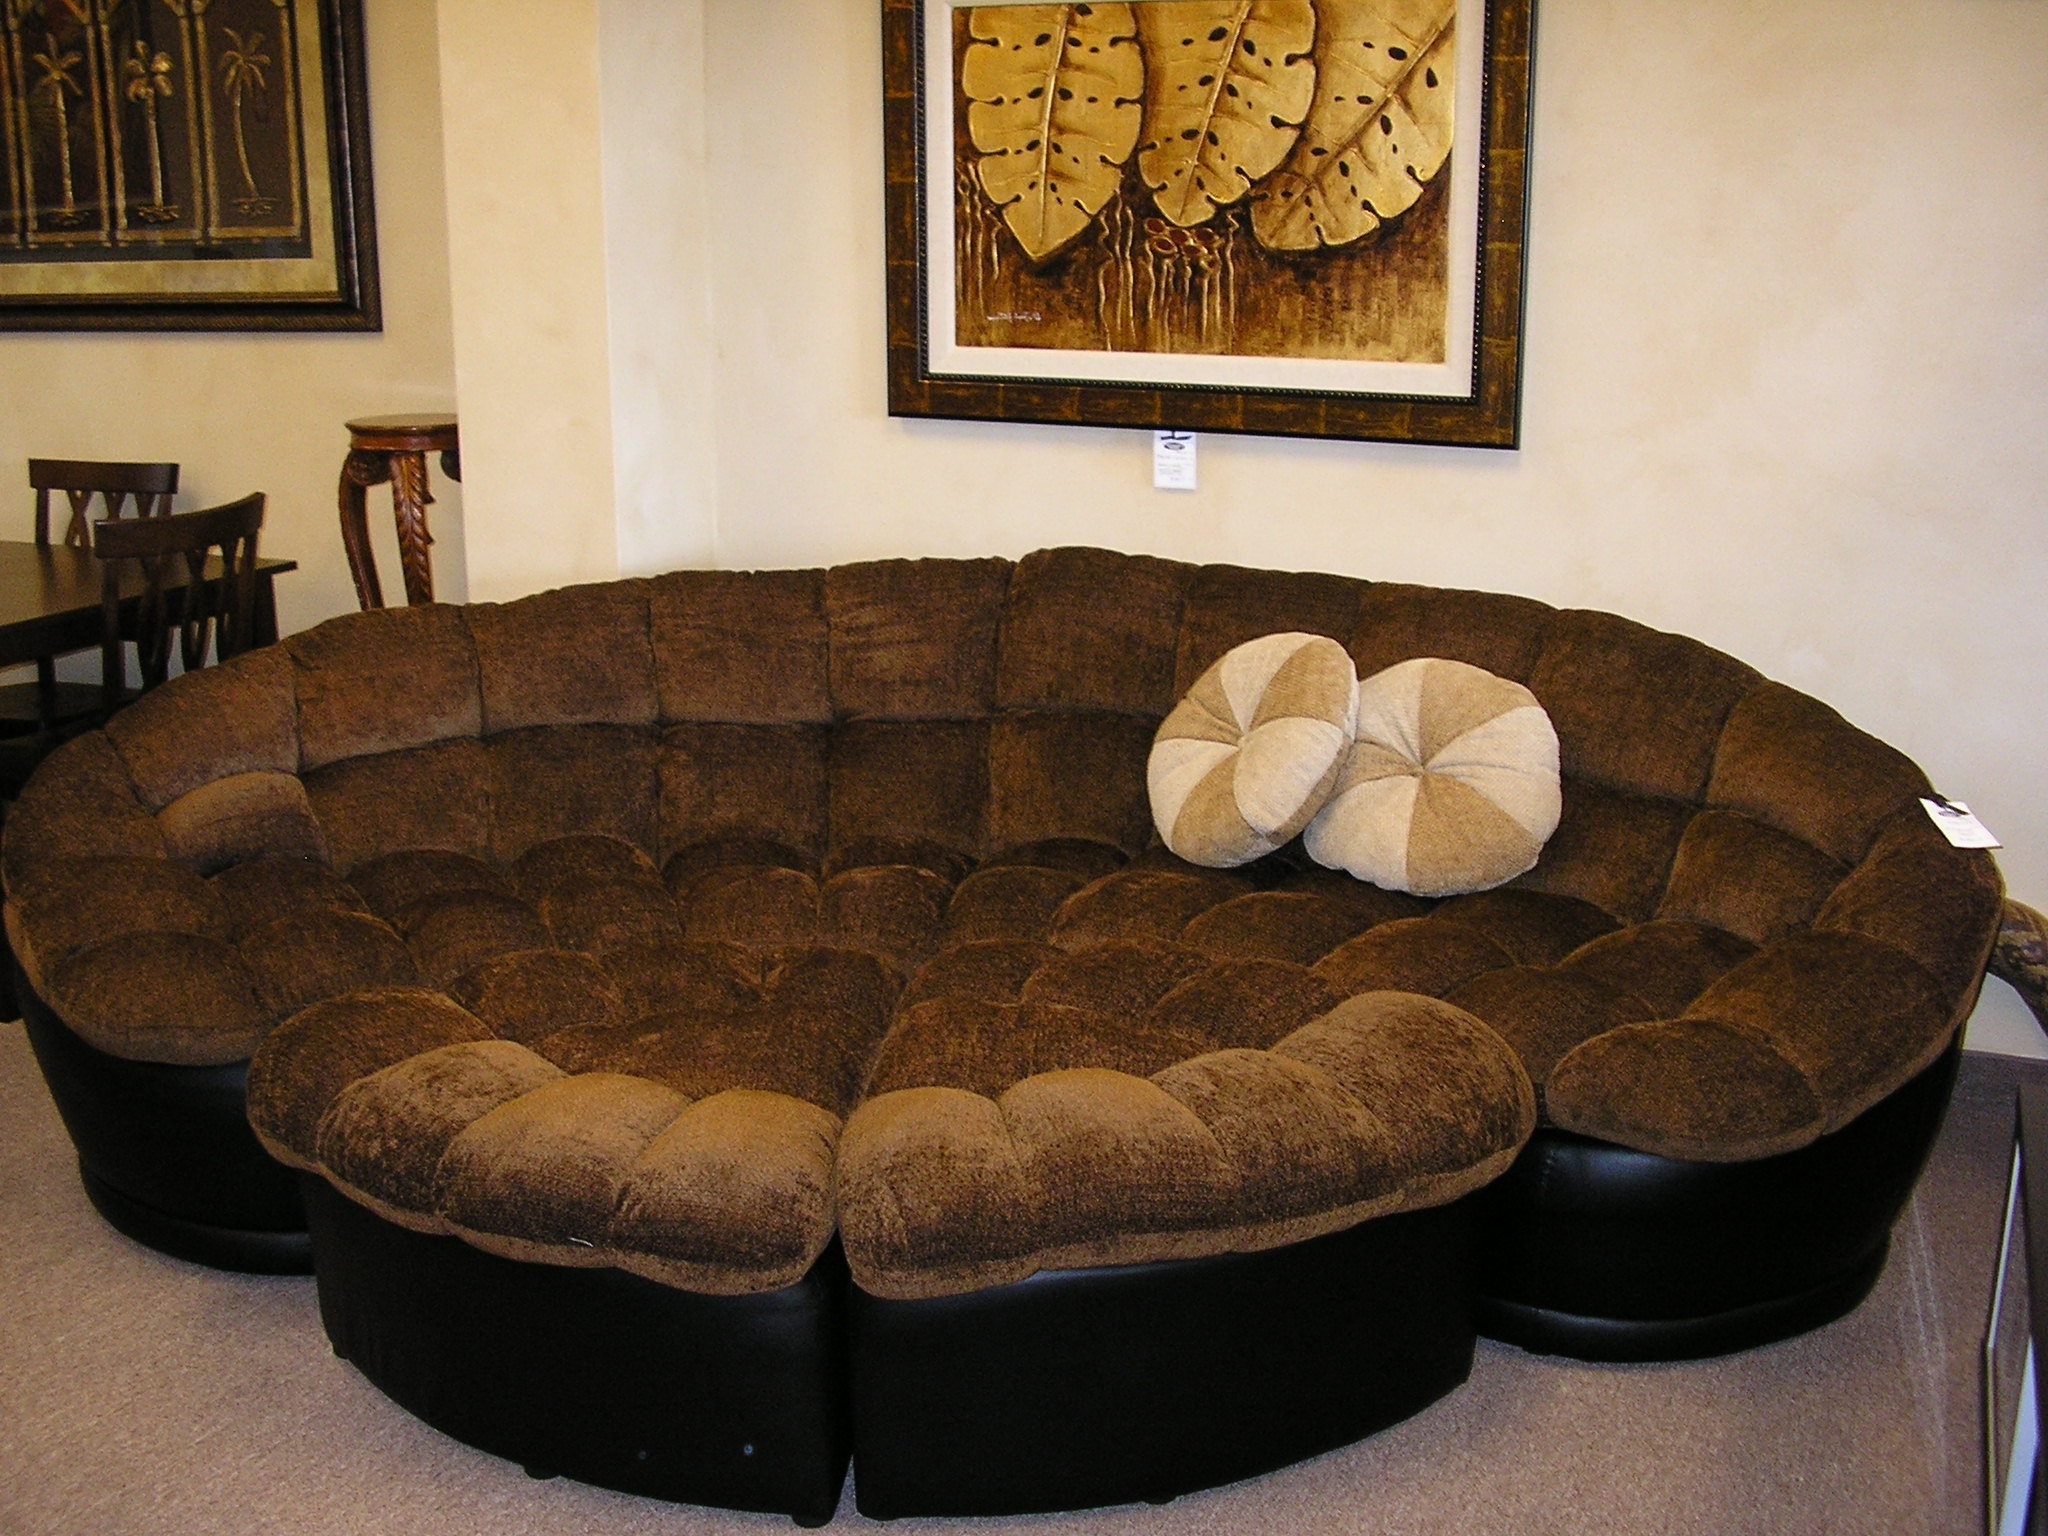 Round Sectional Sofas Pertaining To Popular Sectional Sofa Design: Beautiful Round Sectional Sofas Couches And (View 11 of 15)